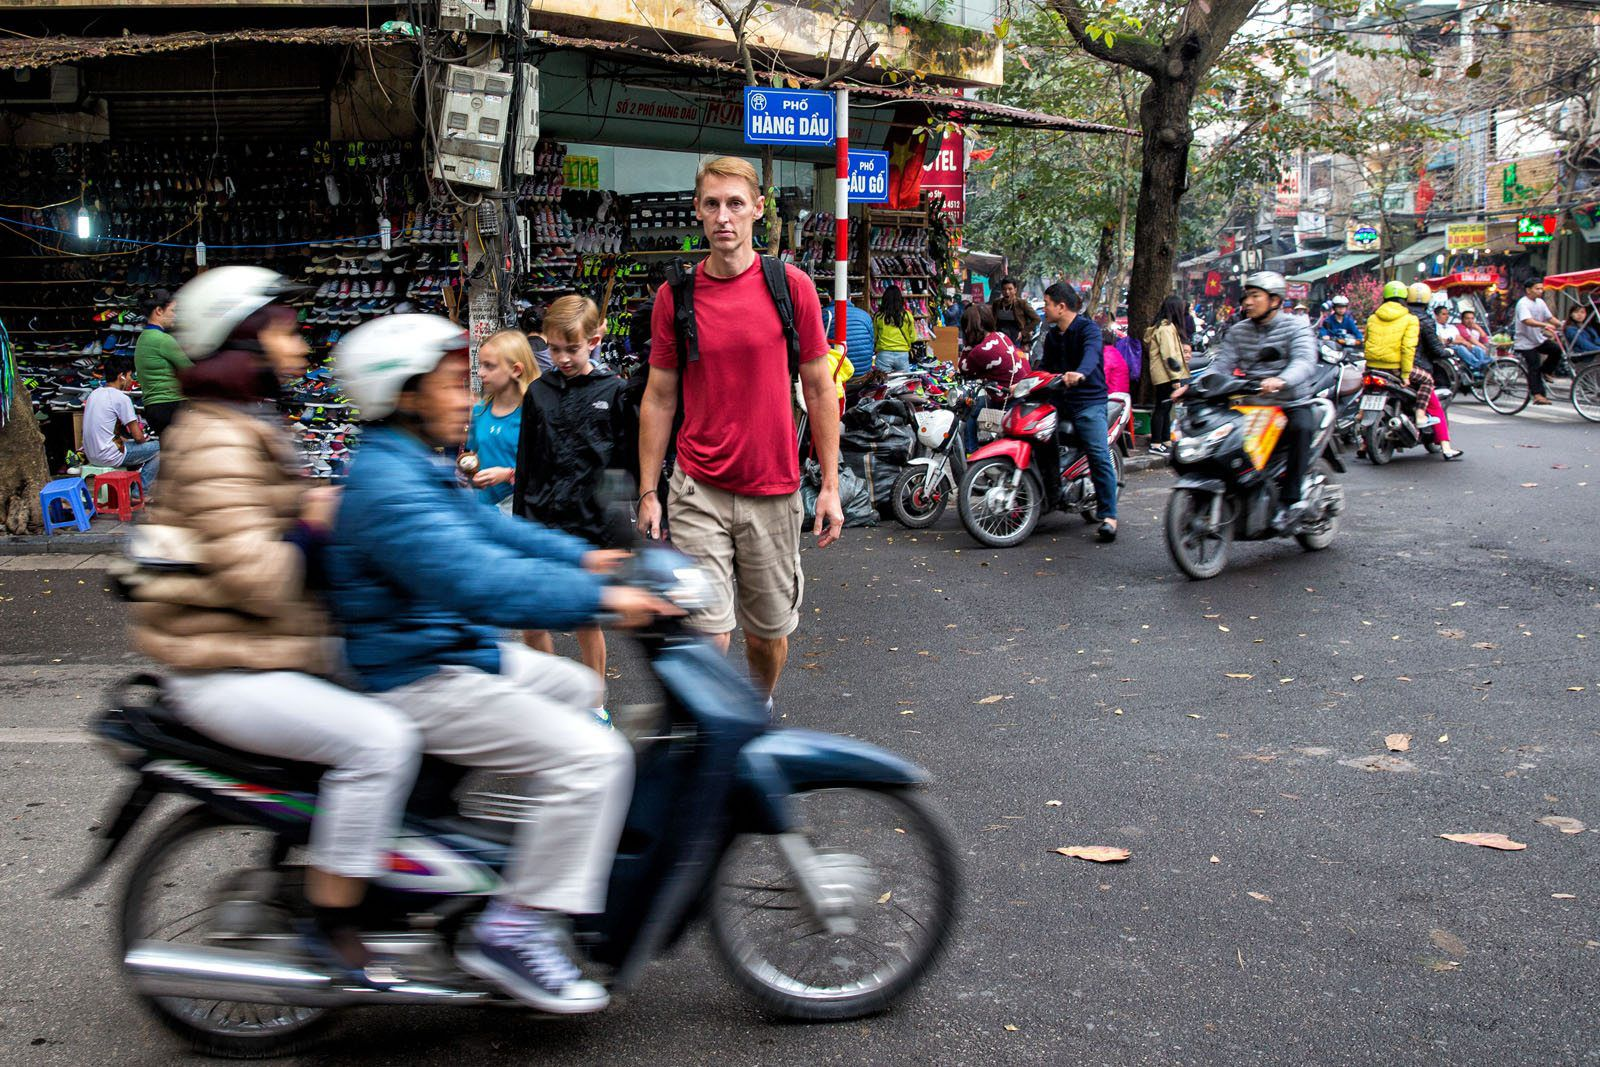 Crossing Street in Hanoi